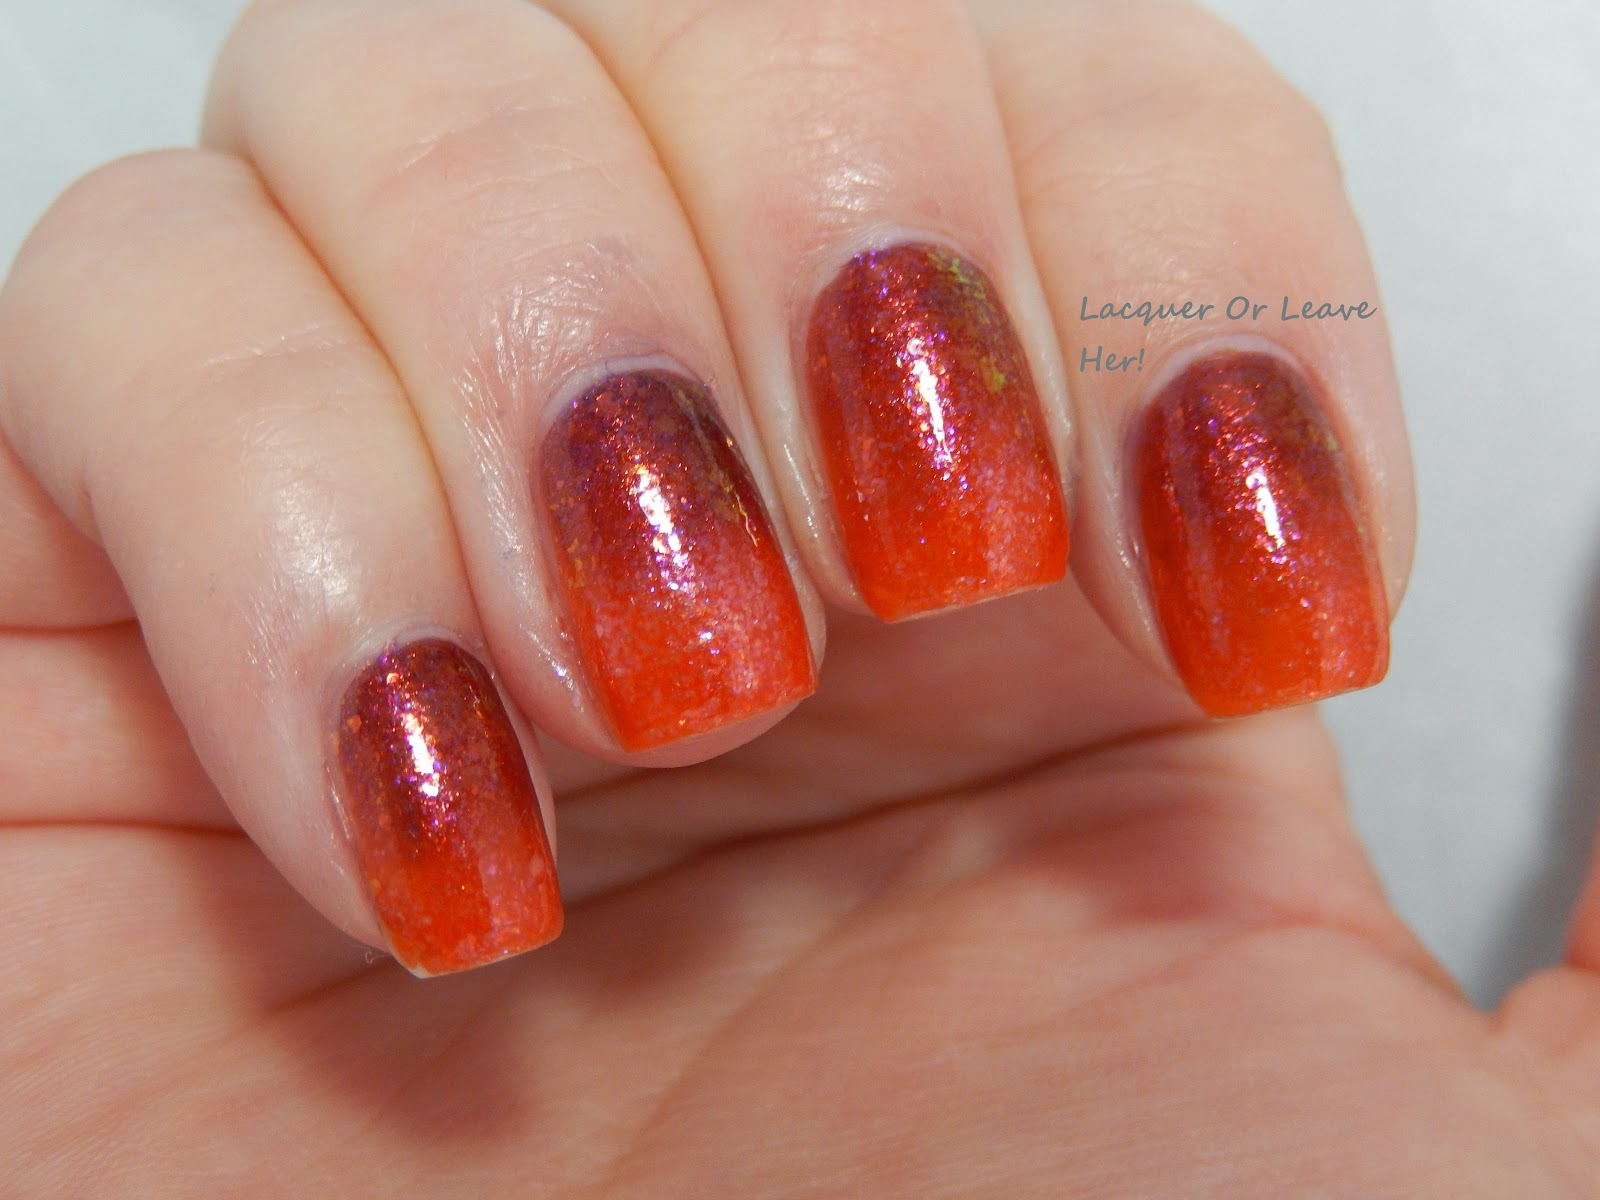 Possibly the most awesome flakie gradient ever, with LynBDesigns Do I Look Like A Frolicker and Nfu-Oh 51